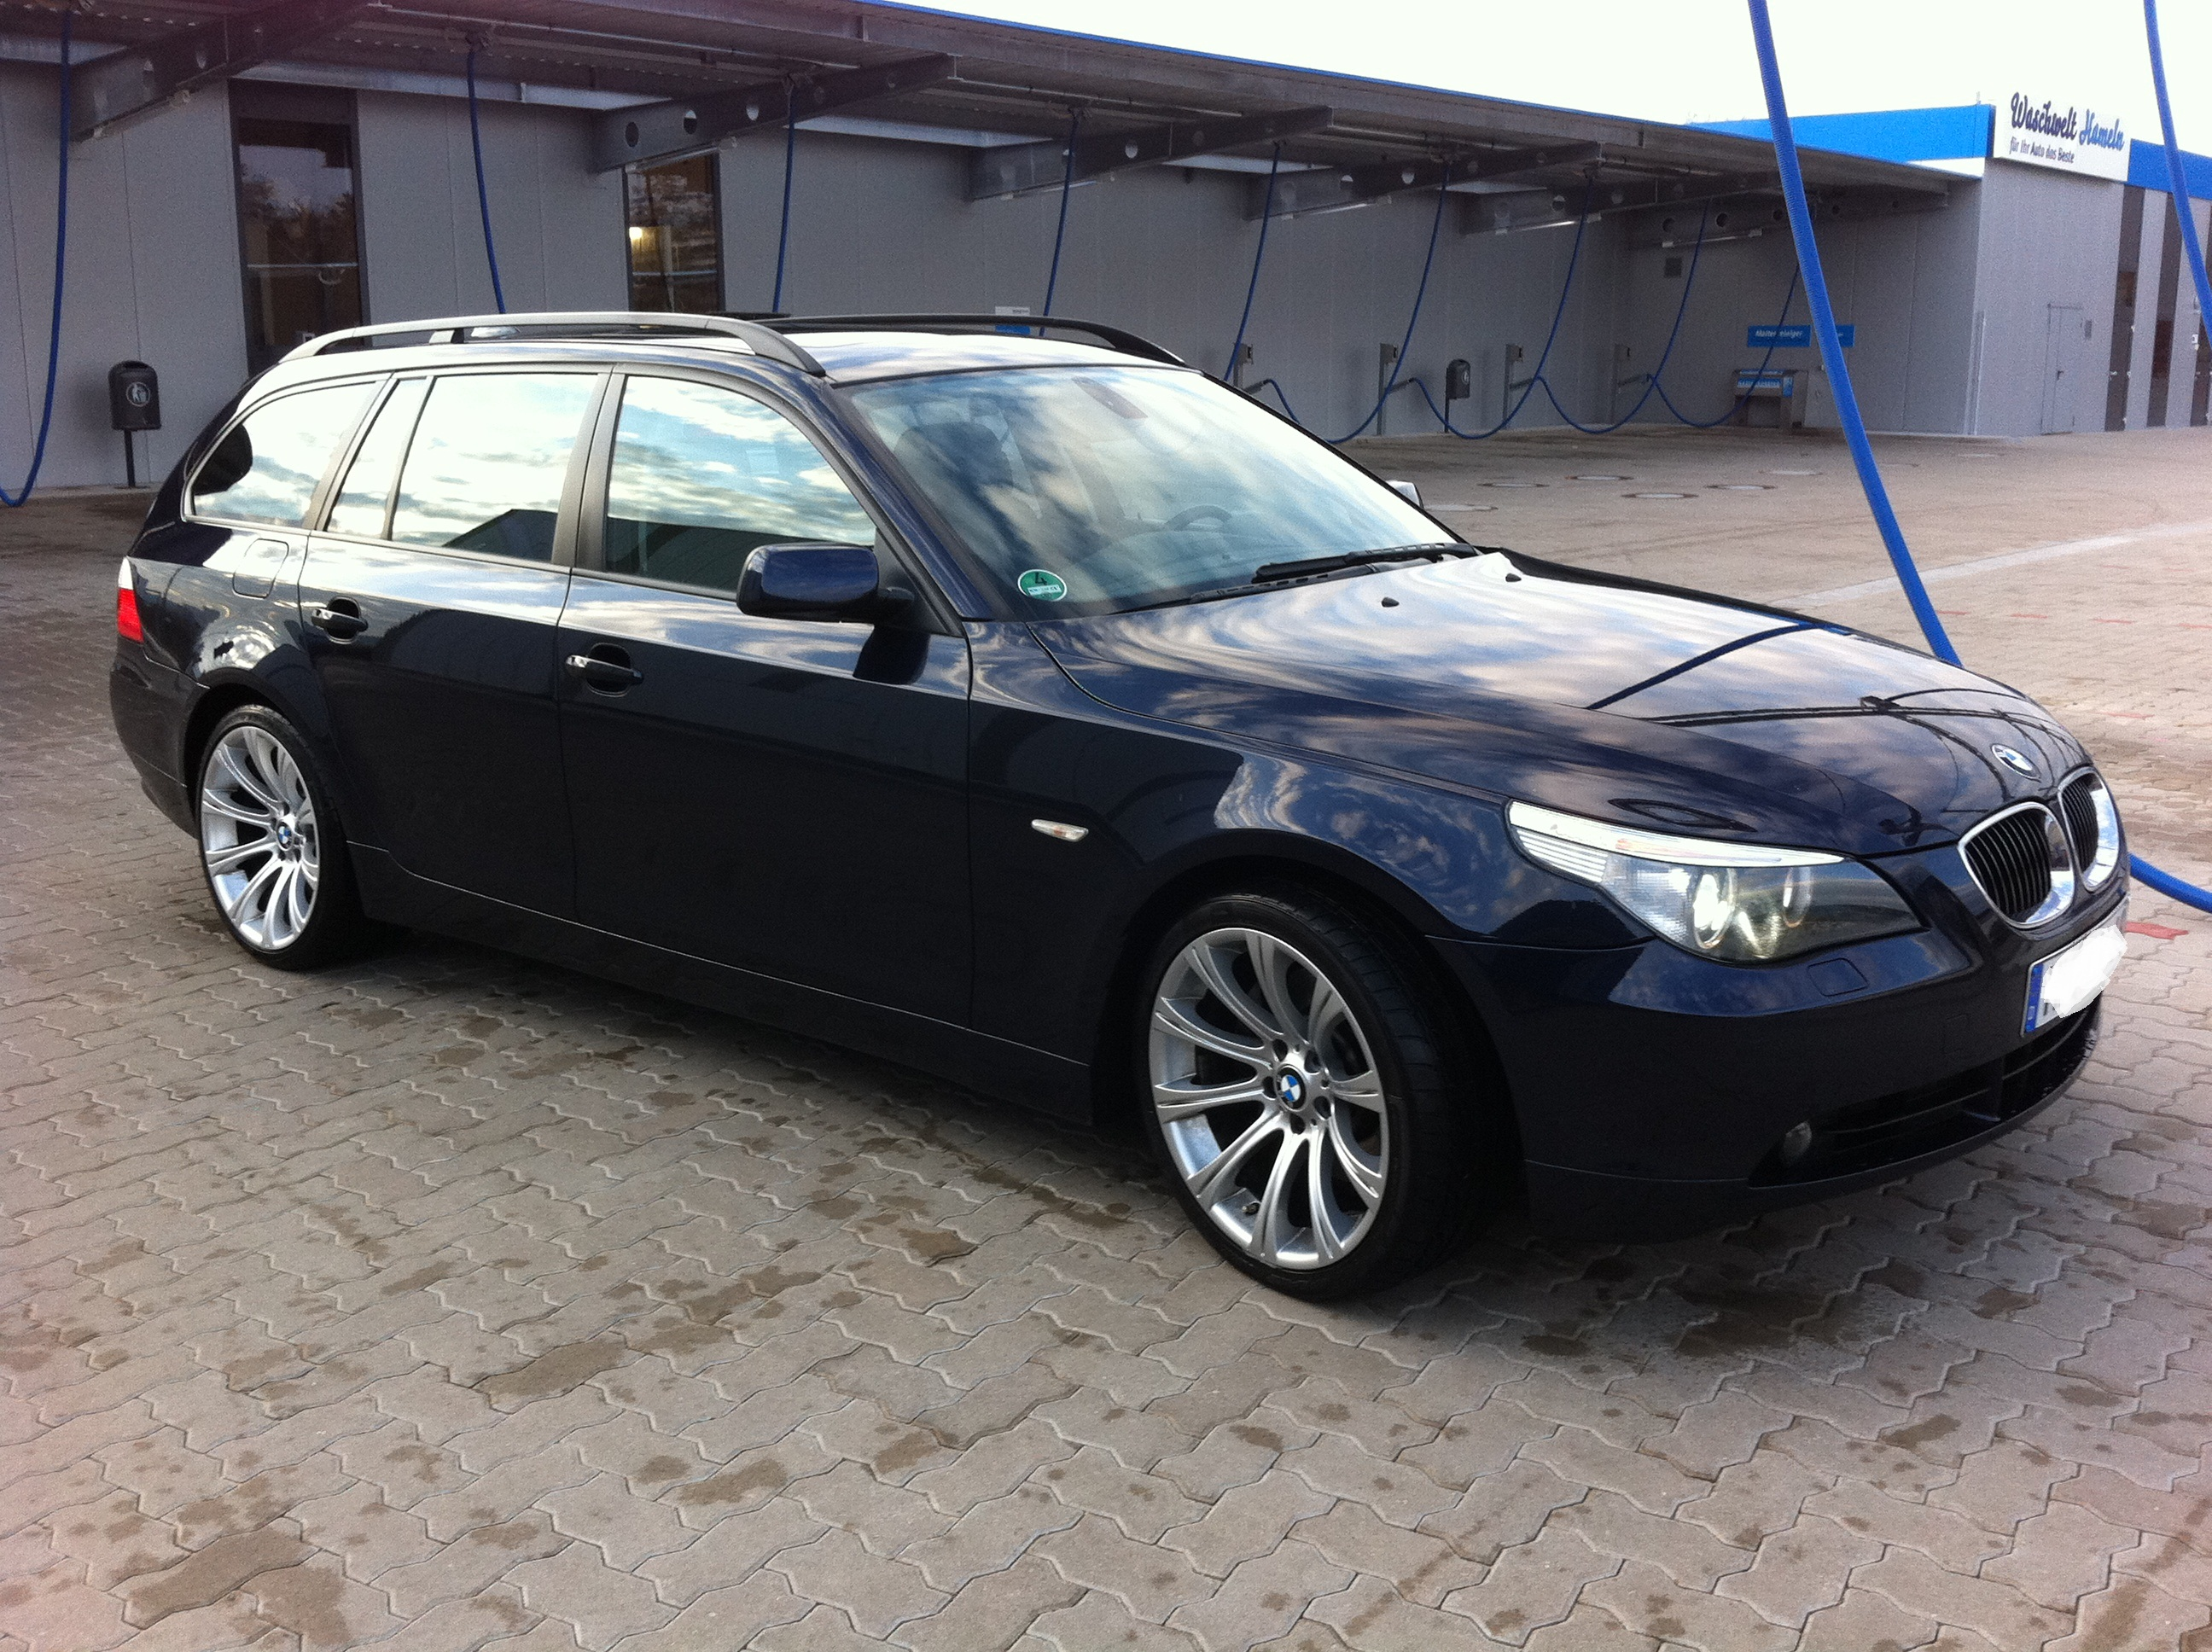 bmw e61 545i mit vollausstattung und m5 felgen biete. Black Bedroom Furniture Sets. Home Design Ideas